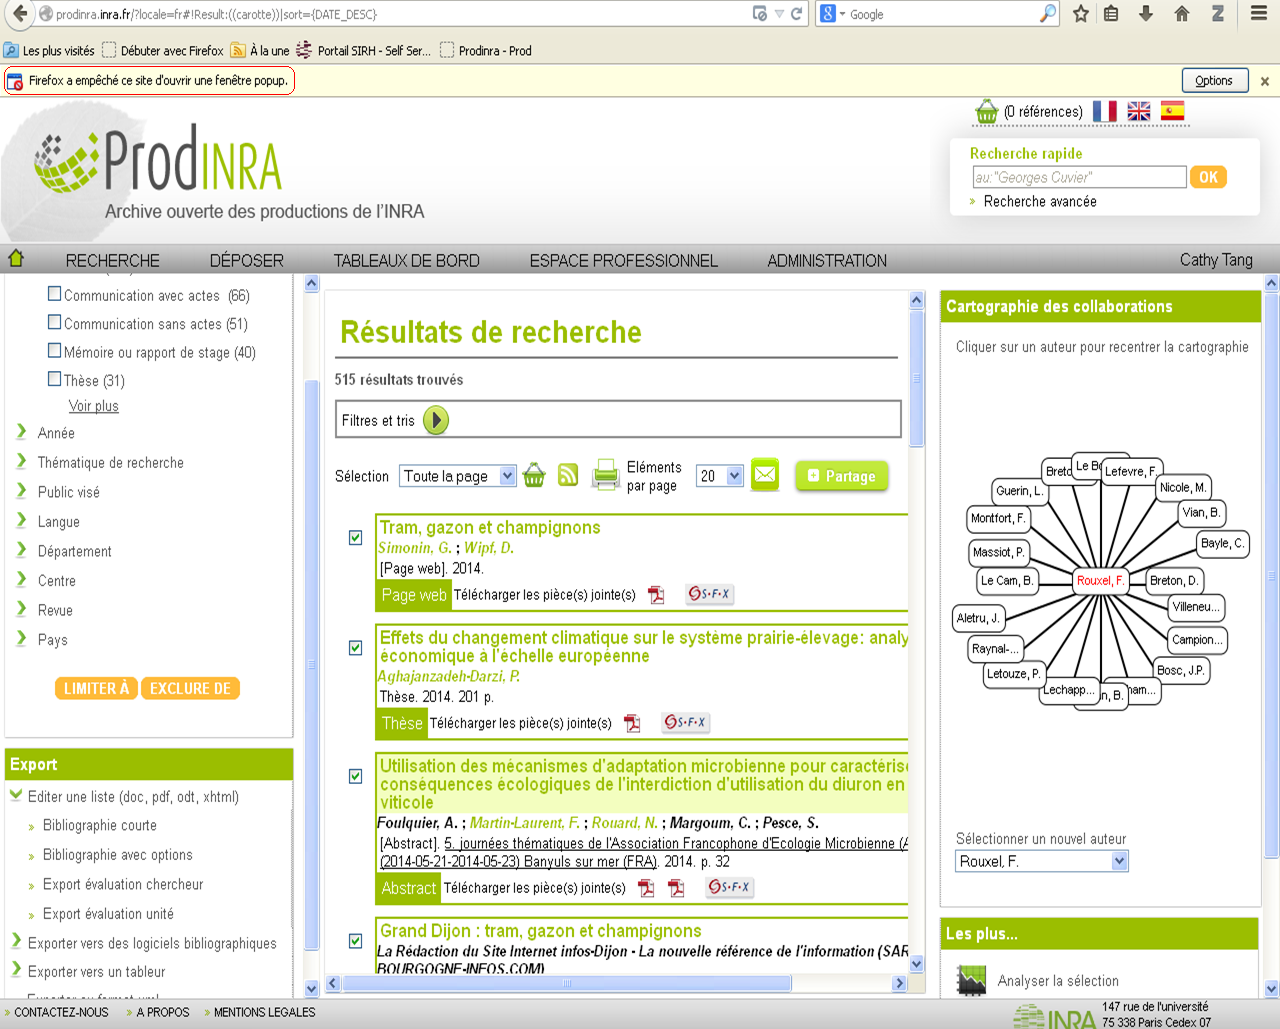 Import export wiki prodinra 2 inra for Bloquer fenetre pop up firefox